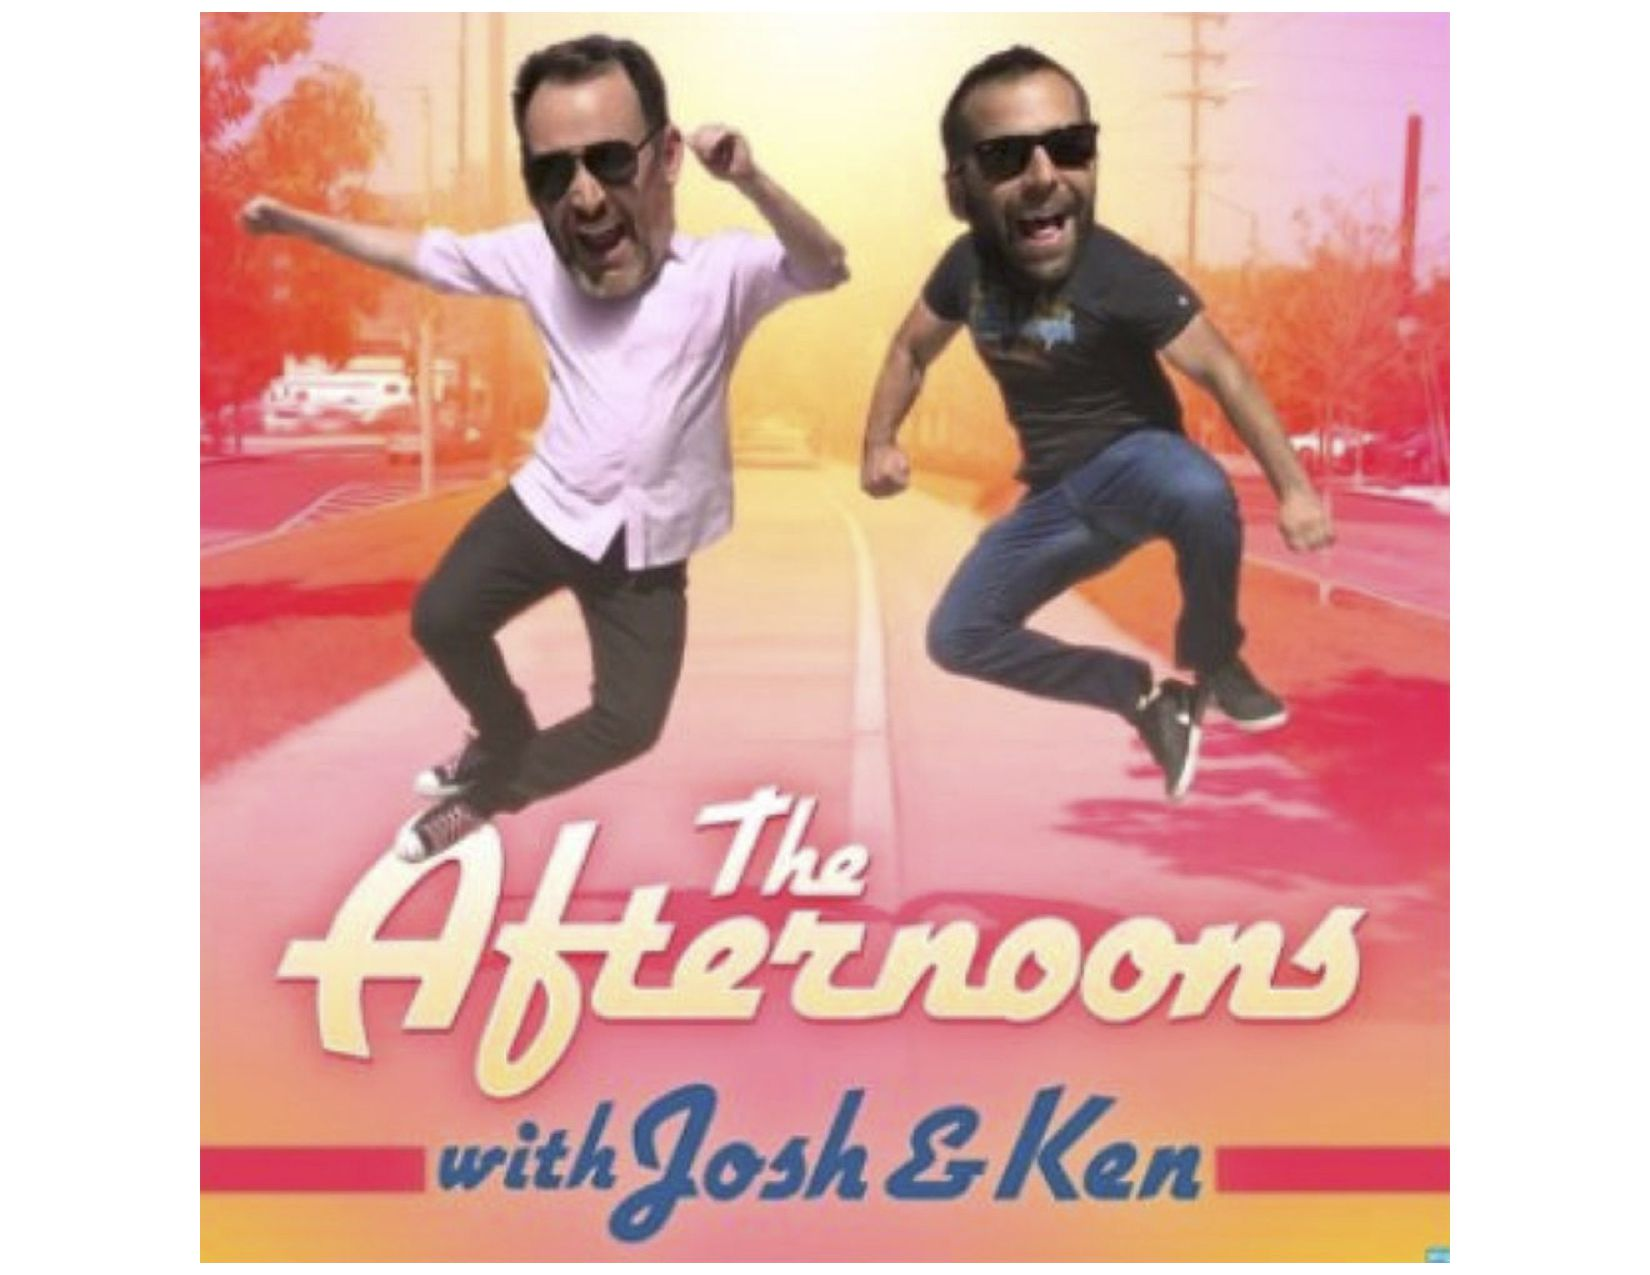 The Afternoons with Josh & Ken comedy podcast